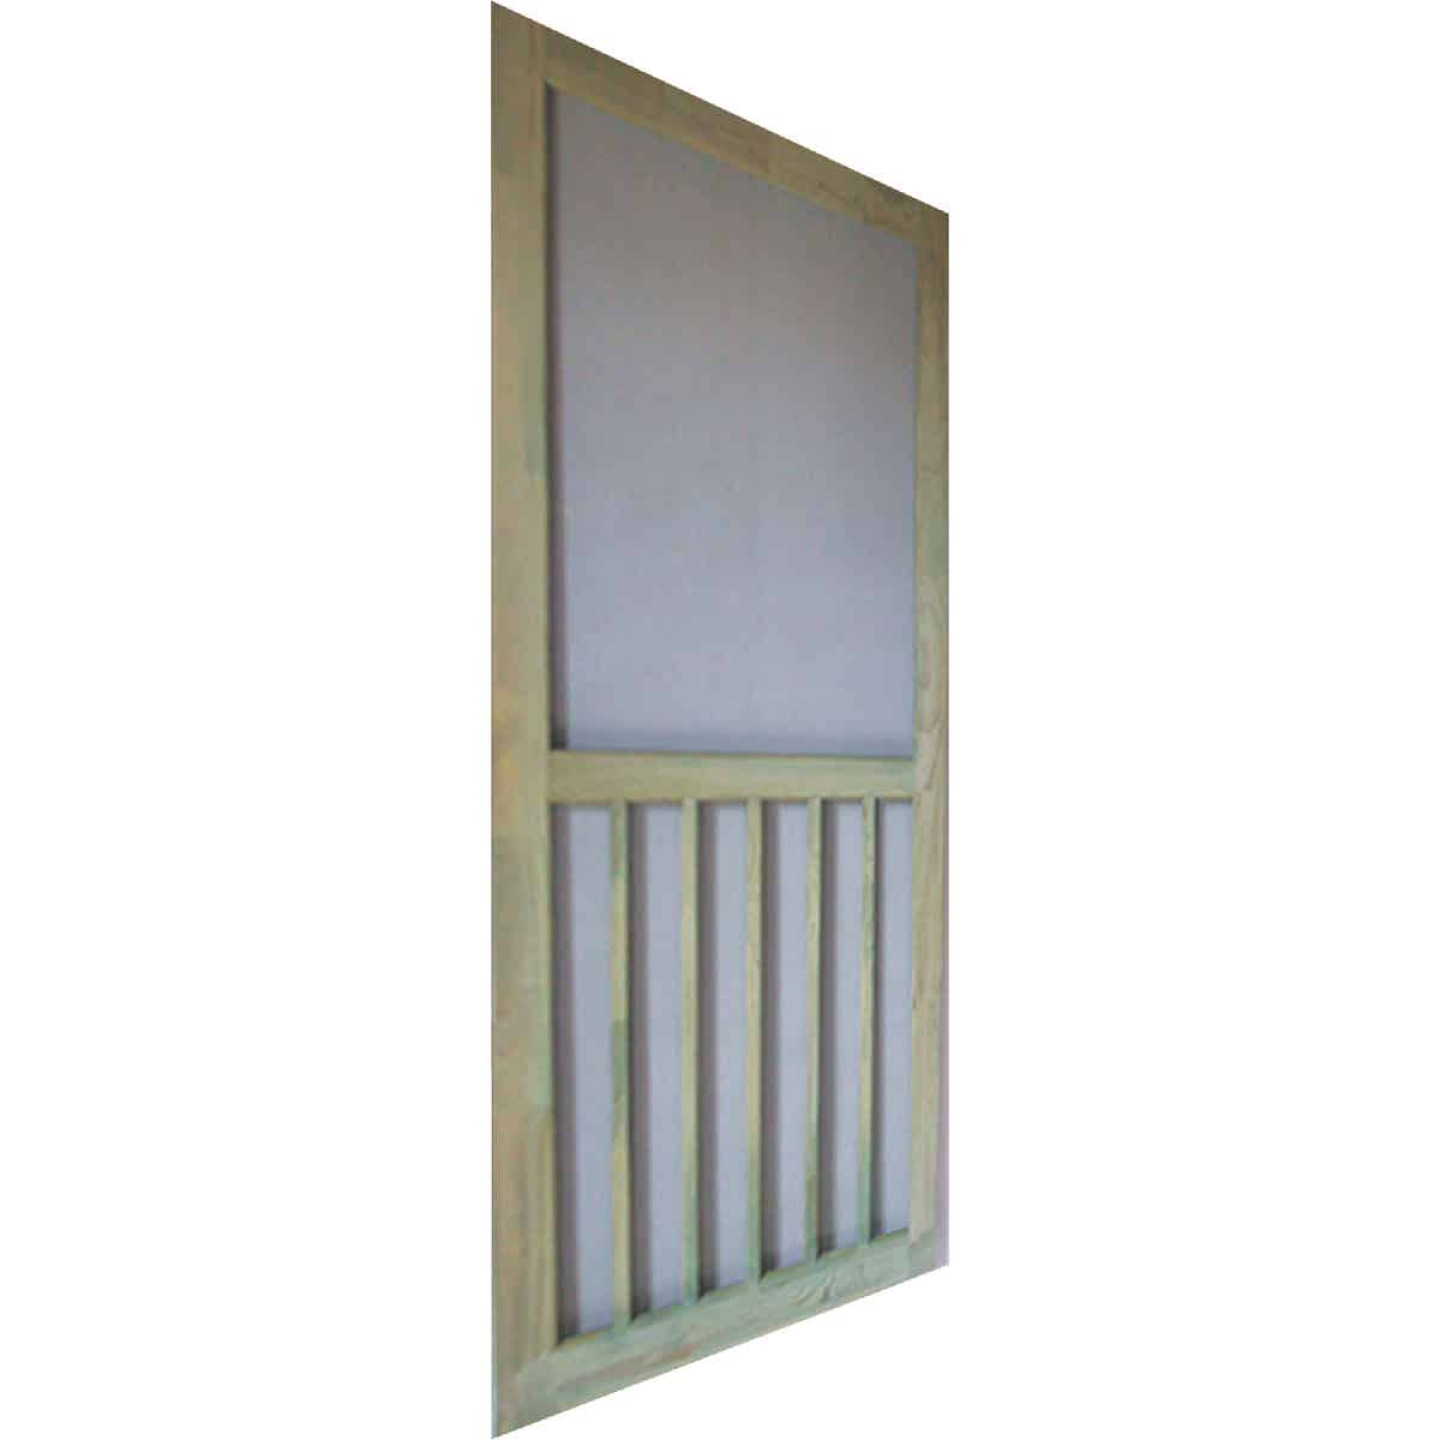 Snavely Kimberly Bay 36 In. W x 80 In. H x 1-1/8 In. Thick ACQ Treated Natural Finger Joint Pine Stiles & Rails 5-Bar Screen Door Image 1